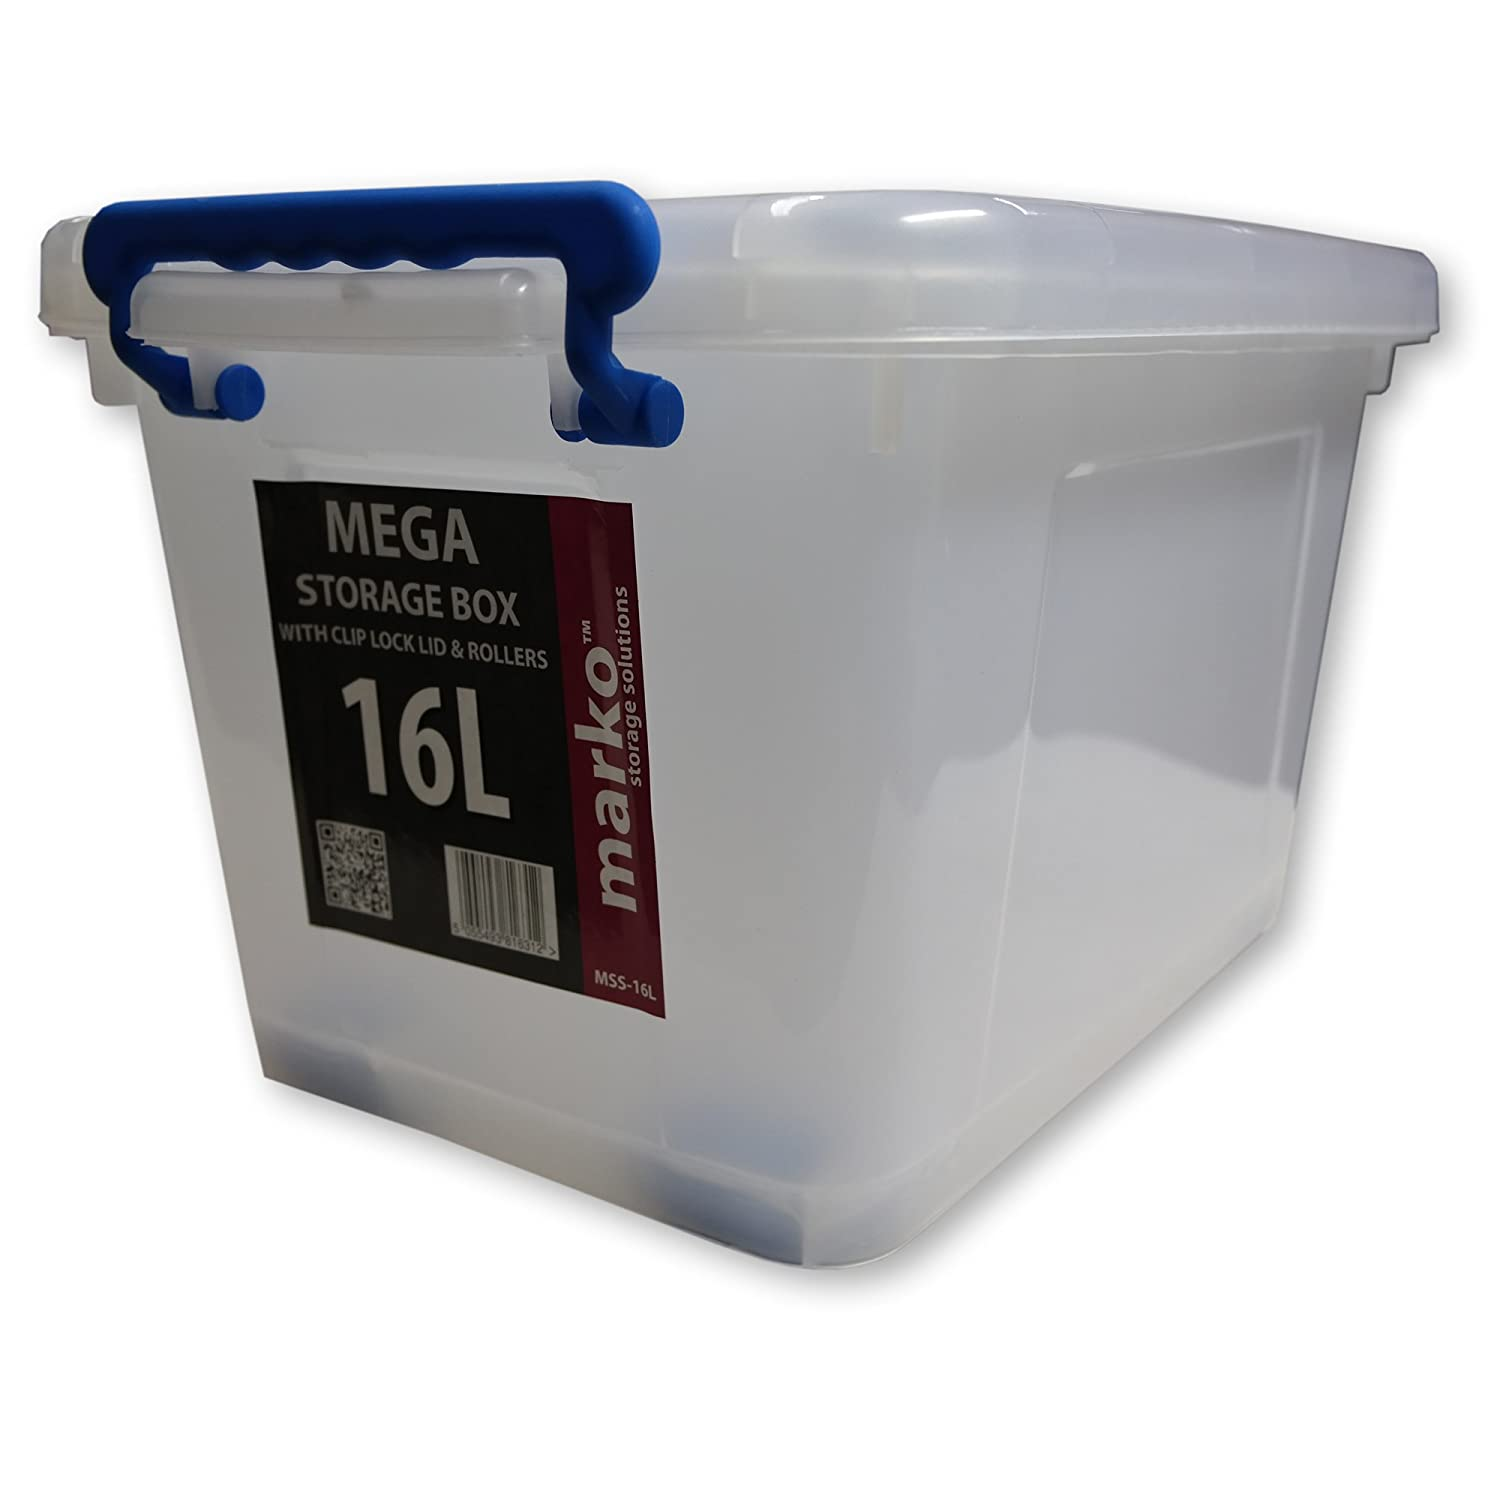 16L Heavy Duty Strong Plastic Storage Box 16 LTR (Litre) With Wheels U0026 Clip  Lids: Amazon.co.uk: Kitchen U0026 Home